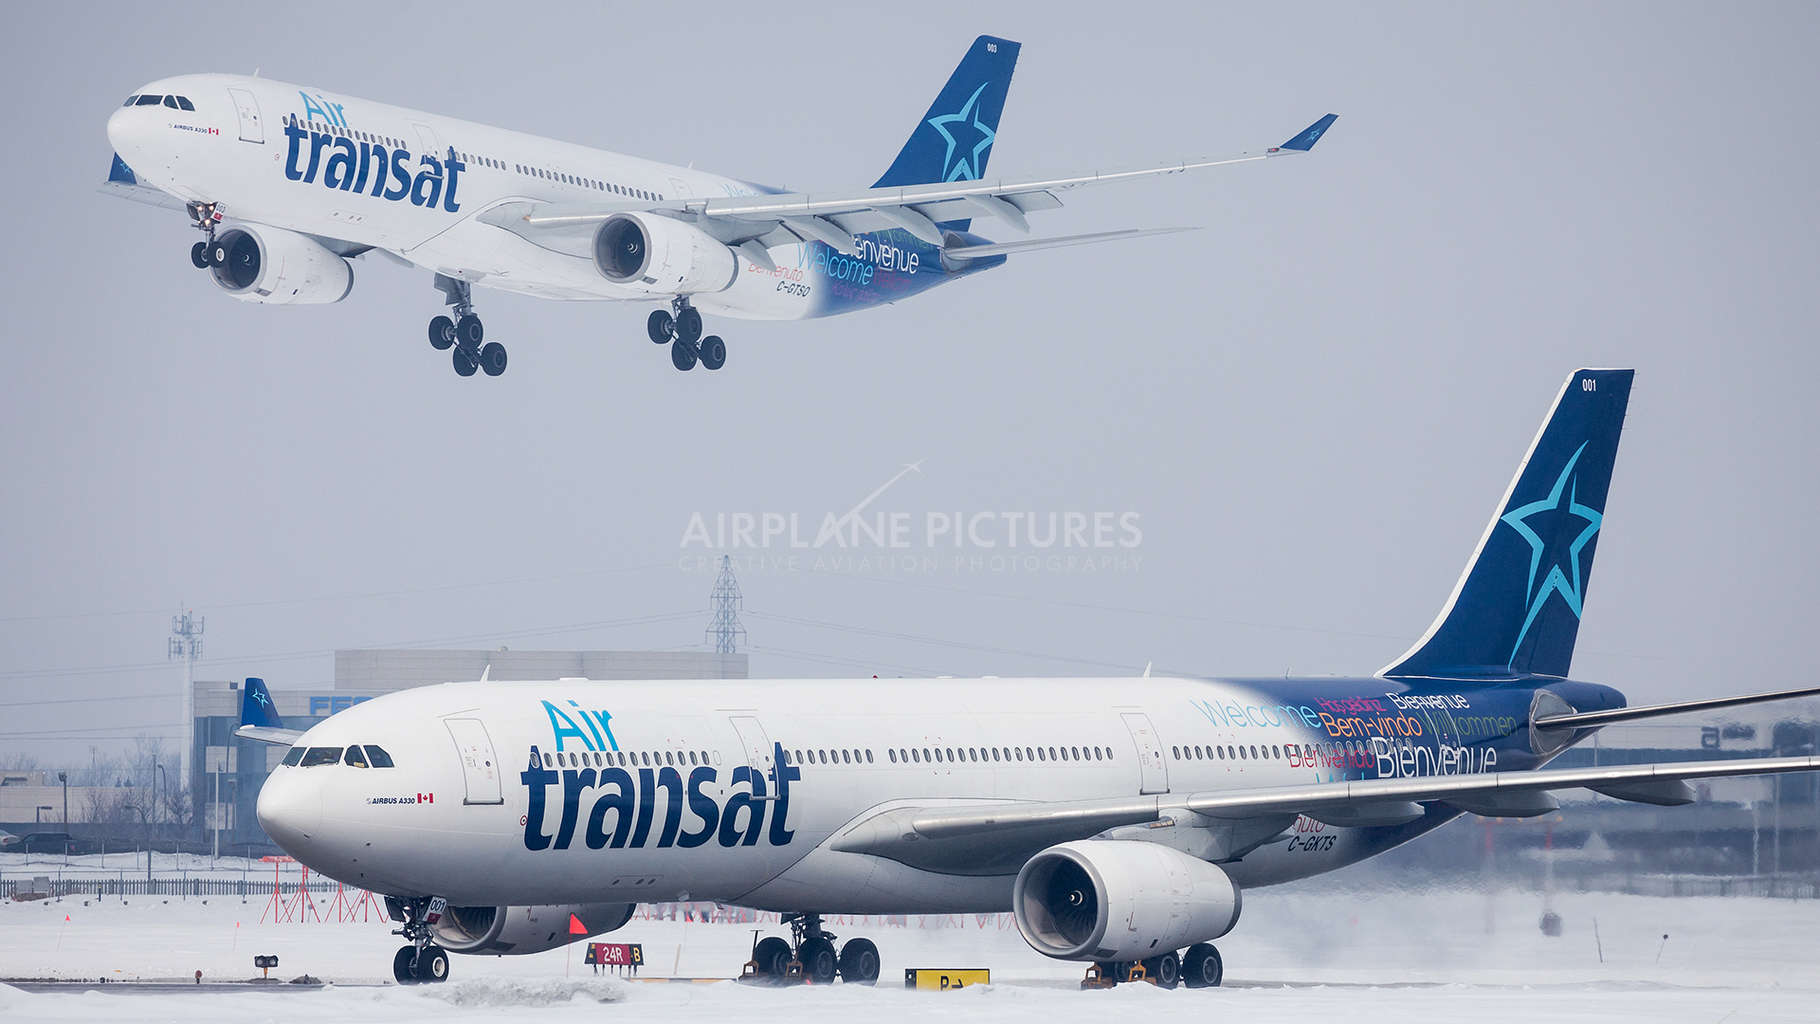 TUI to purchase French and Greek tour businesses from Transat